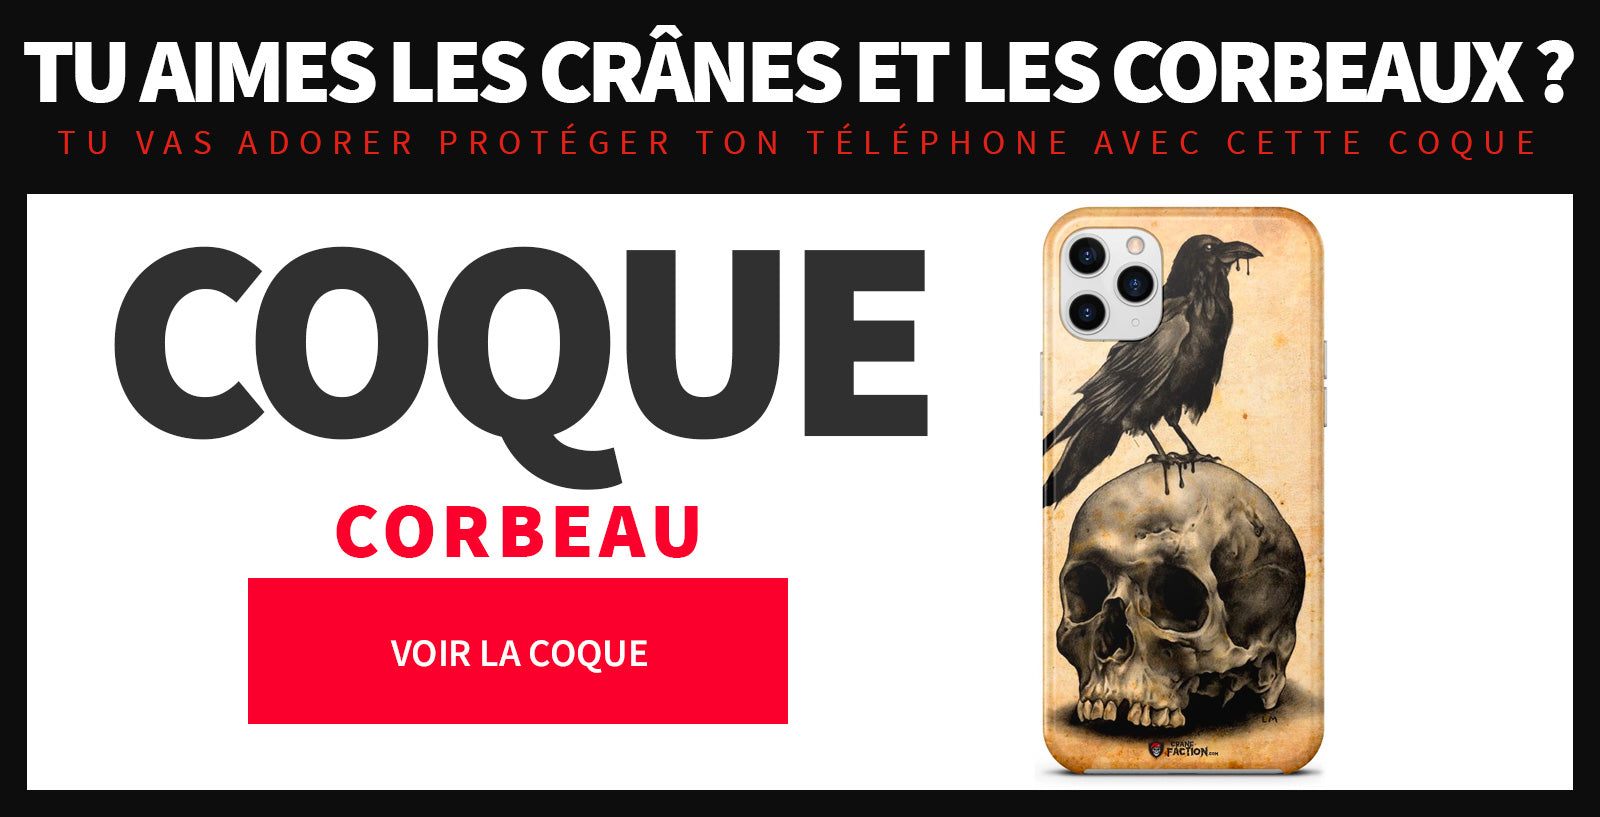 Coque Iphone corbeau